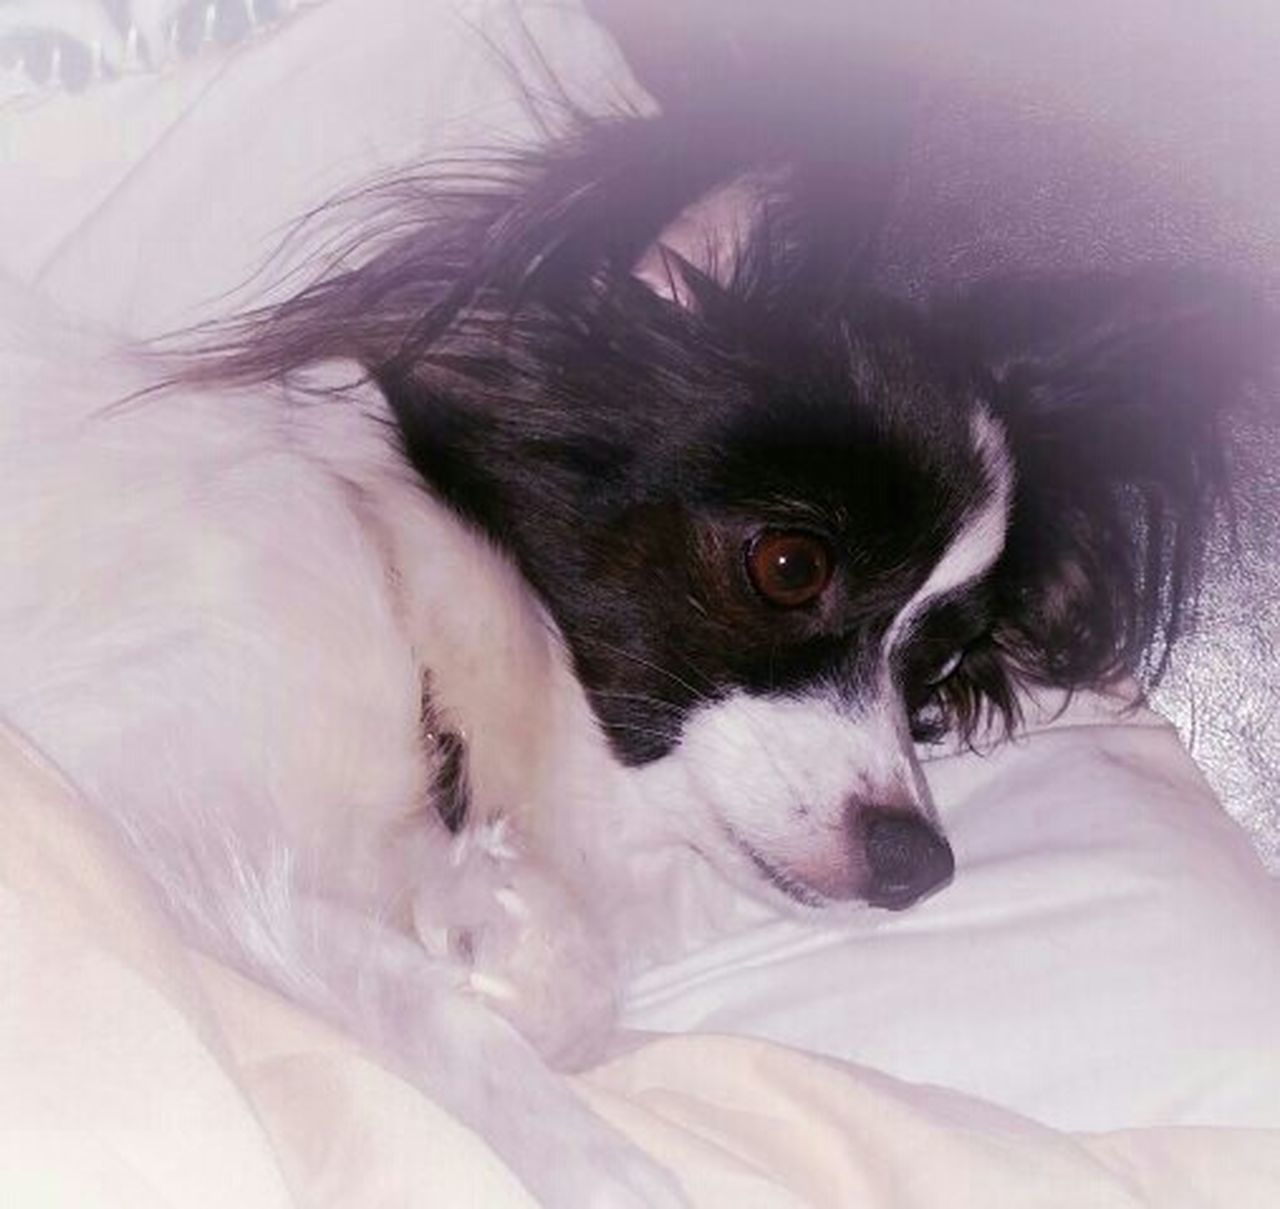 Miss Sophy resting after playing with the boys! I Love My Dog Papillion, Dog, Cute, Precious, Furry Papillon Its A Dogs Life Dogoftheday Dog Photography Dogmodel Dogs Of EyeEm My Photos ♥ Papillon Dog No People EyeEm Gallery Black And White Photography Eyeem Market Dog Close-up EyeEm Best Shots My Photography Eyeem Photography Welcome To Black Black And White Ankle Biter Lap Dog Dogslife My Dogs Are Cooler Than Your Kids